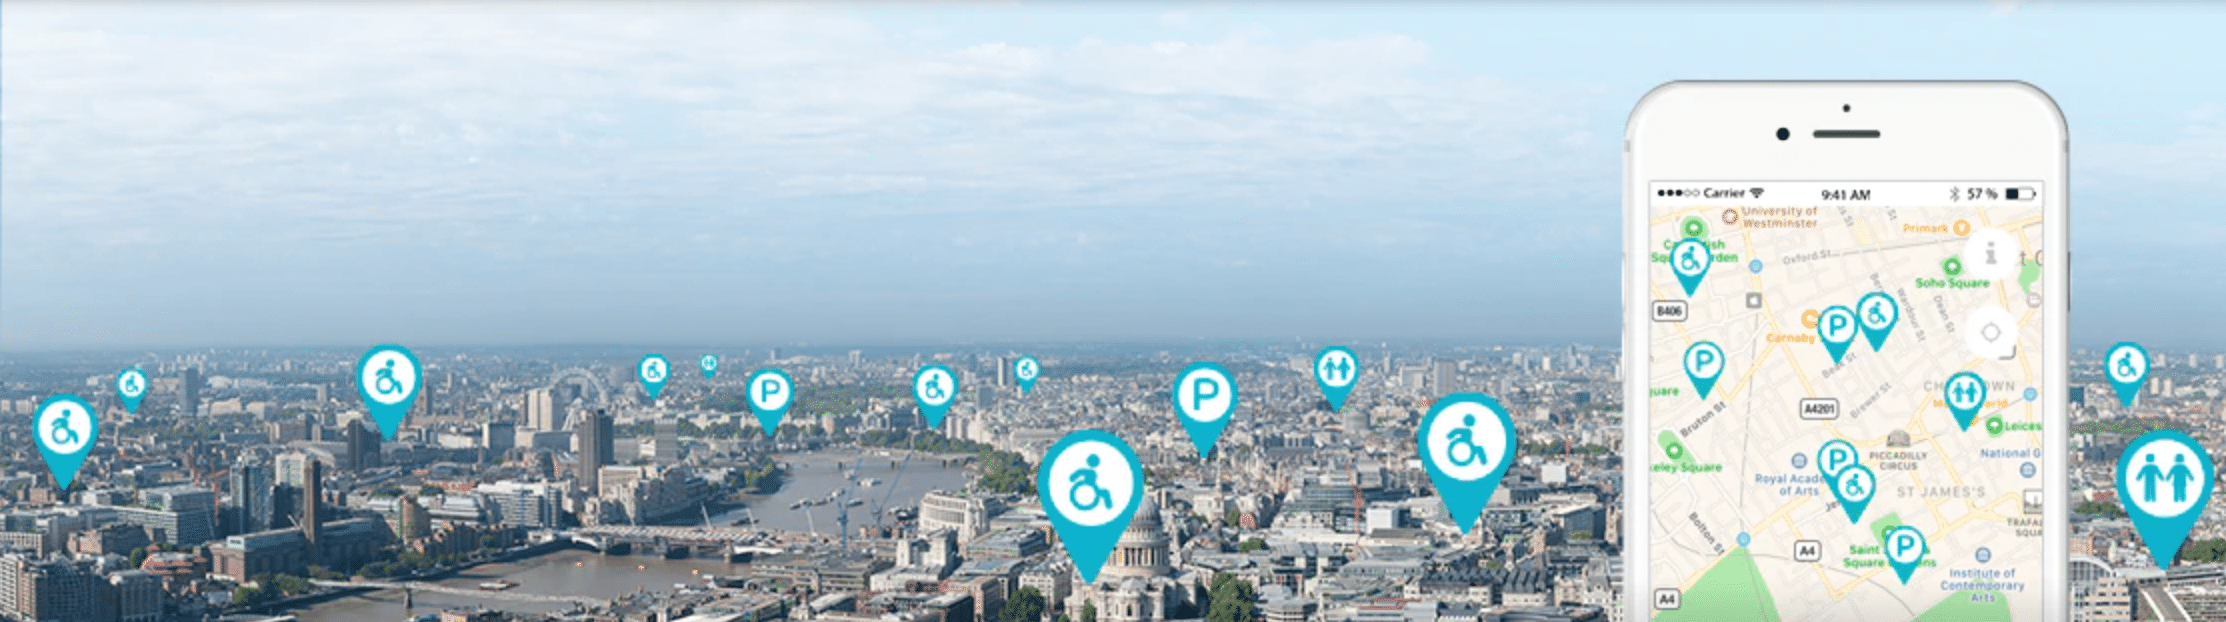 panoramic view of a city with wheelchair and parking icons floating throughout